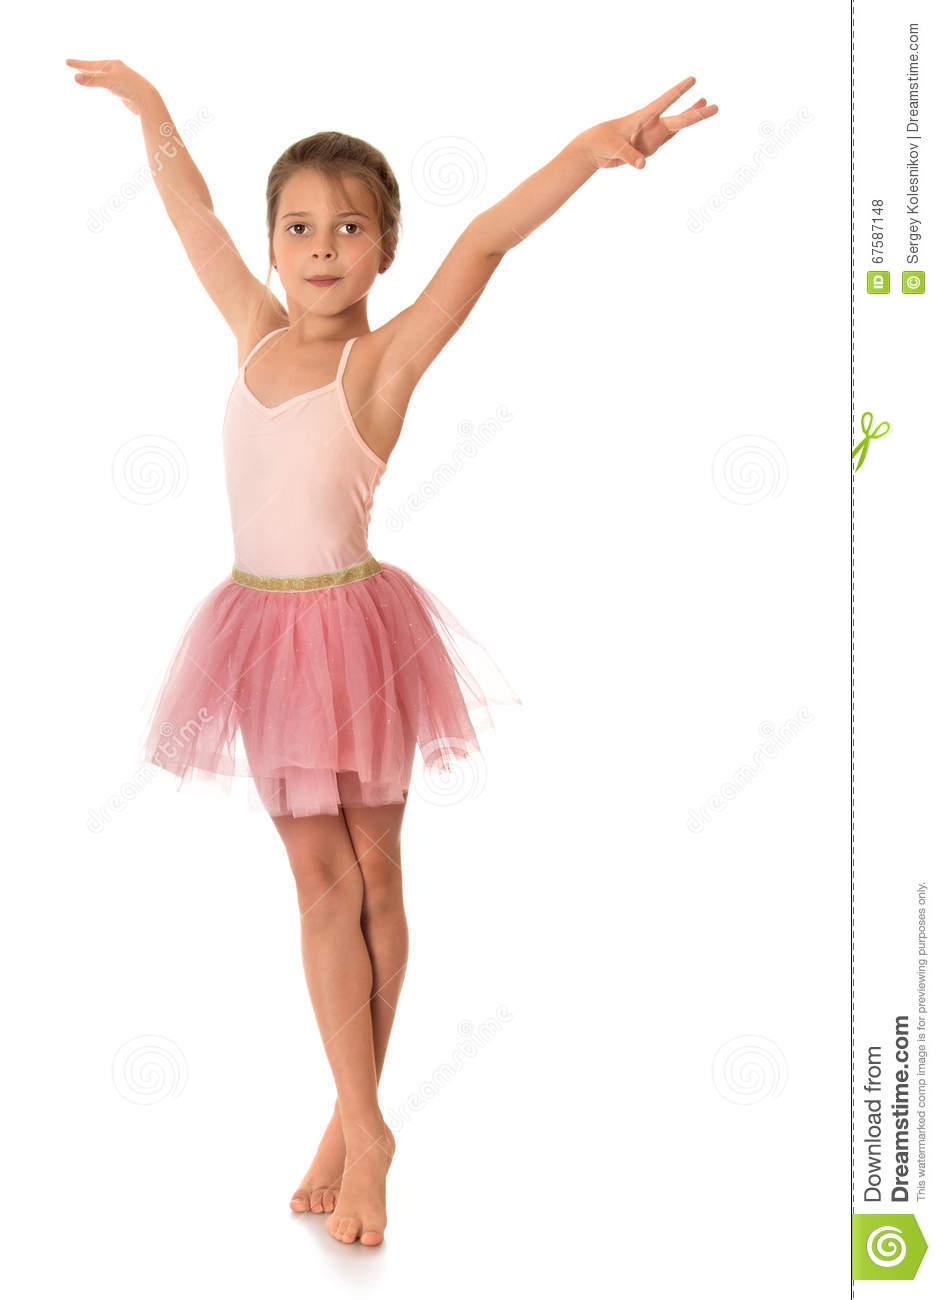 45a2dee47 Cute little gymnast stock photo. Image of isolated